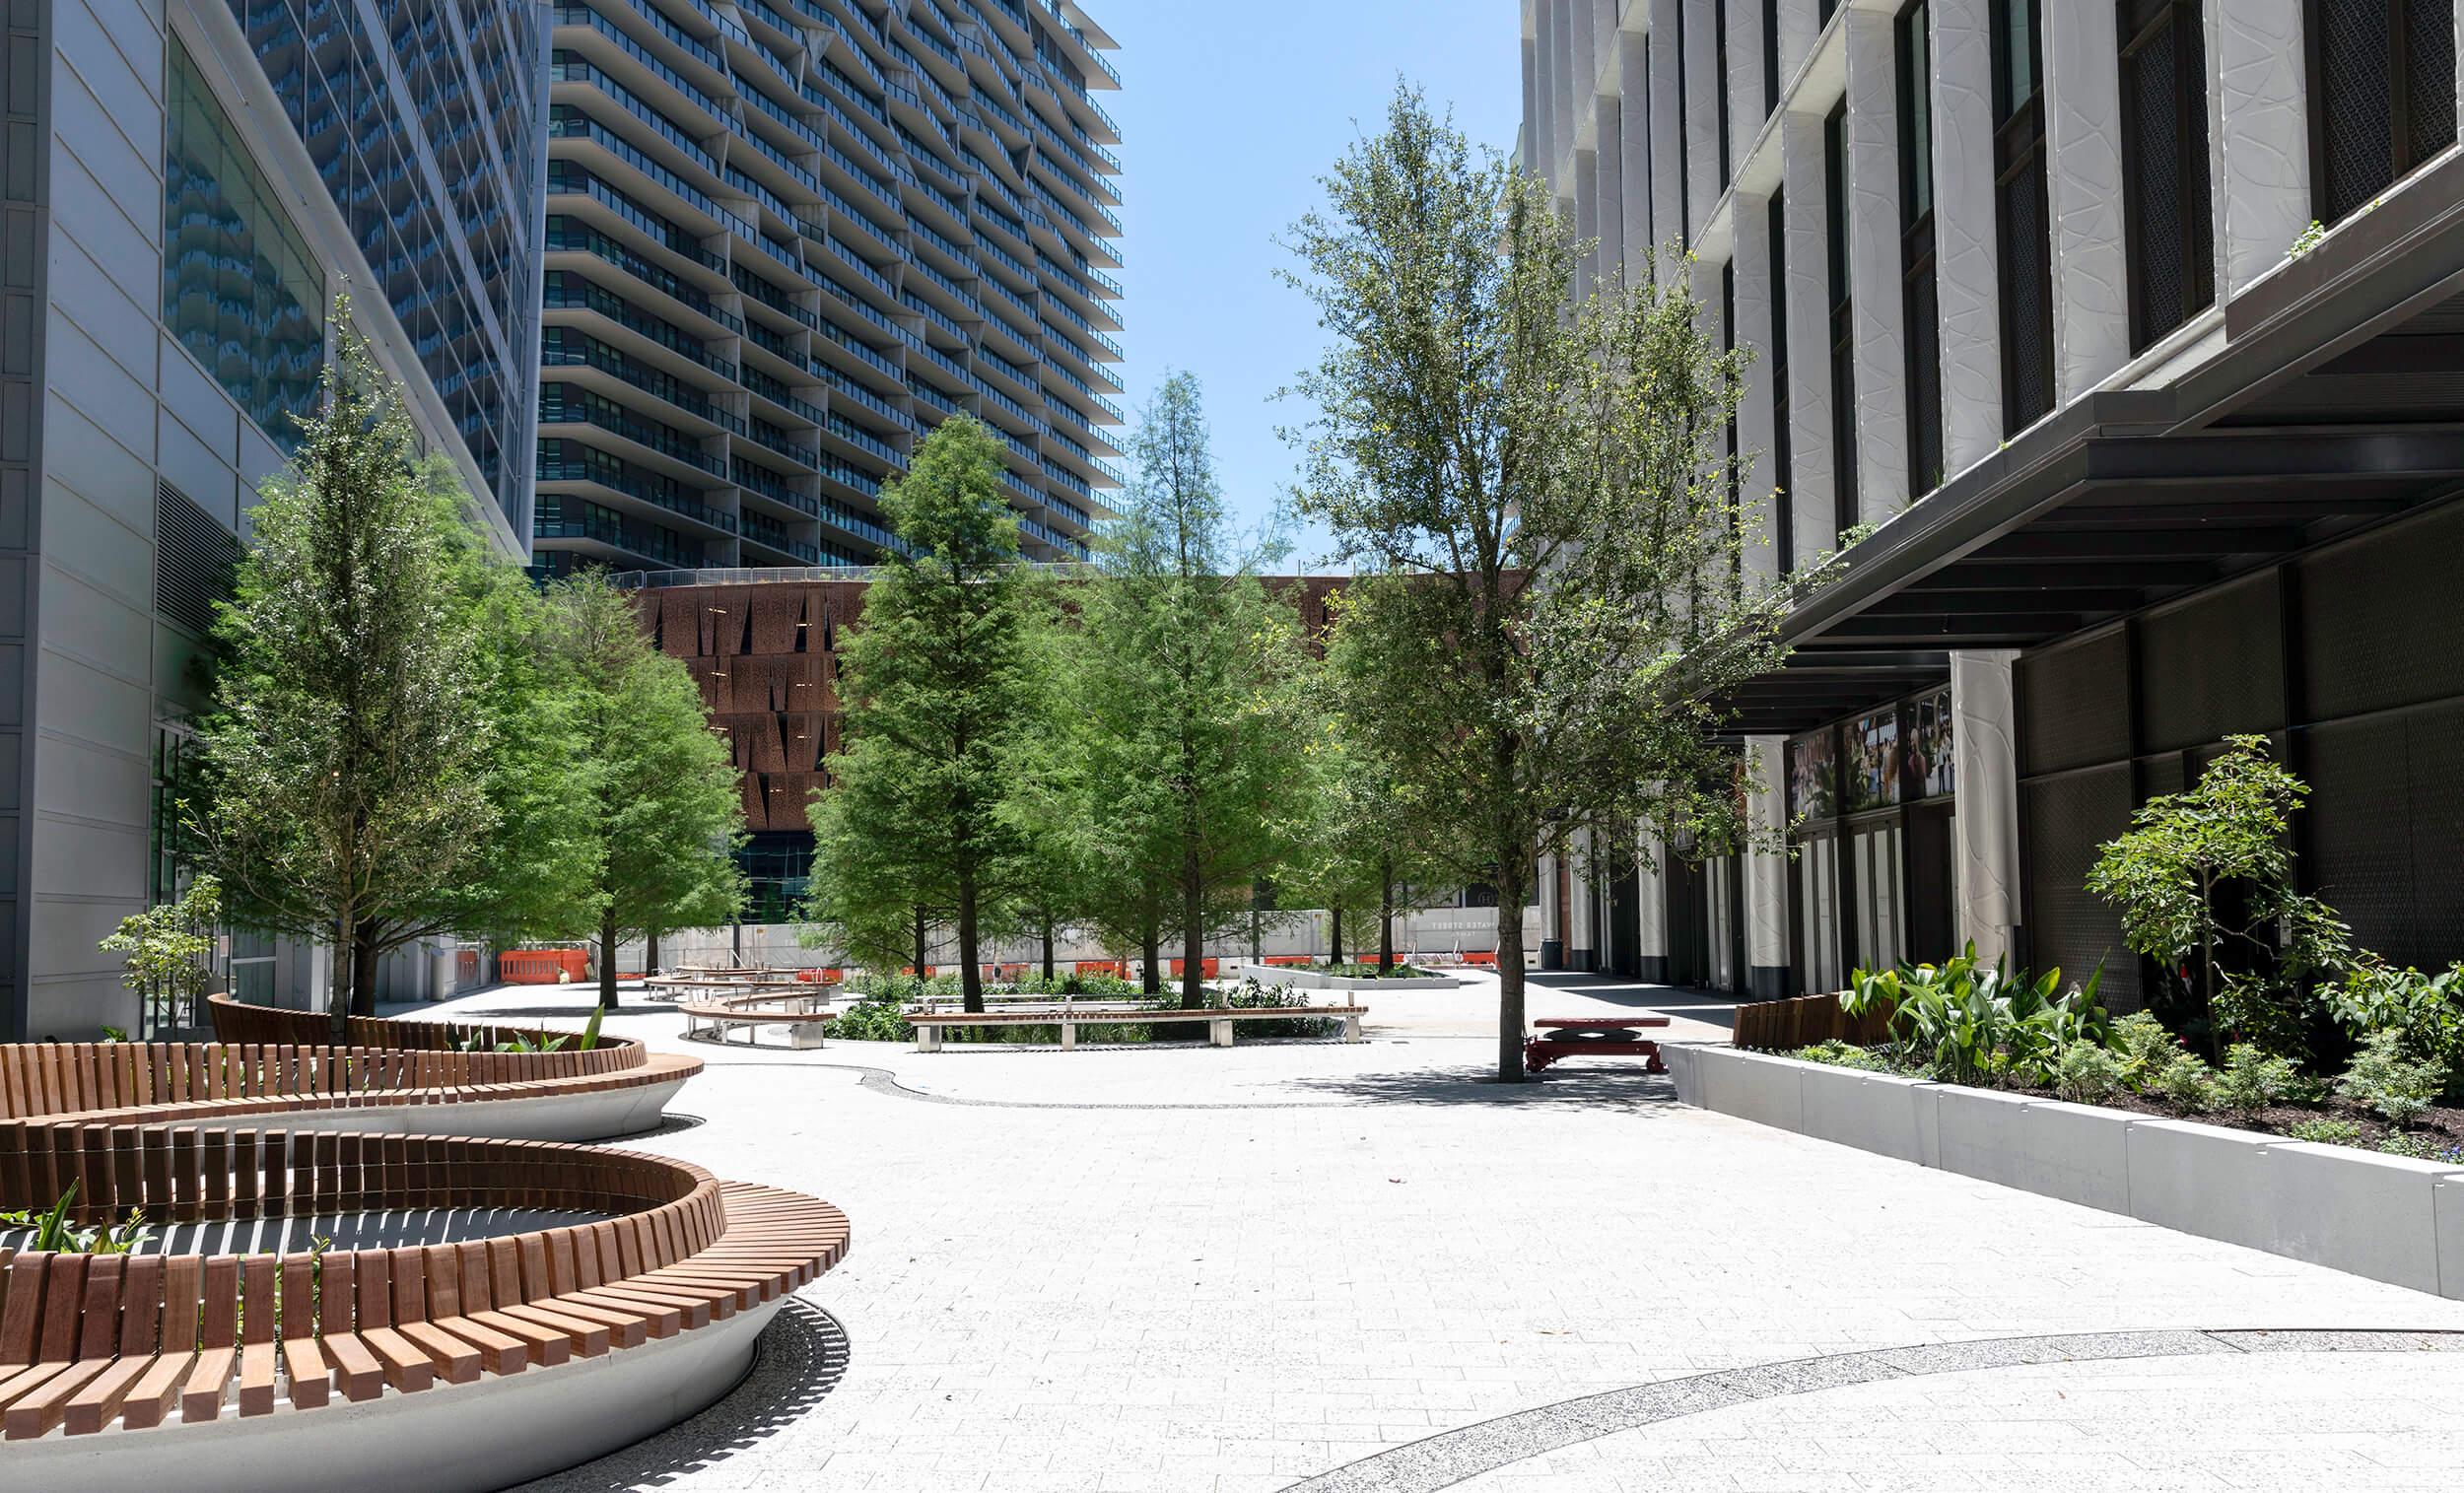 A plaza filled with trees and benches for pedestrians in the Water Street Tampa neighborhood